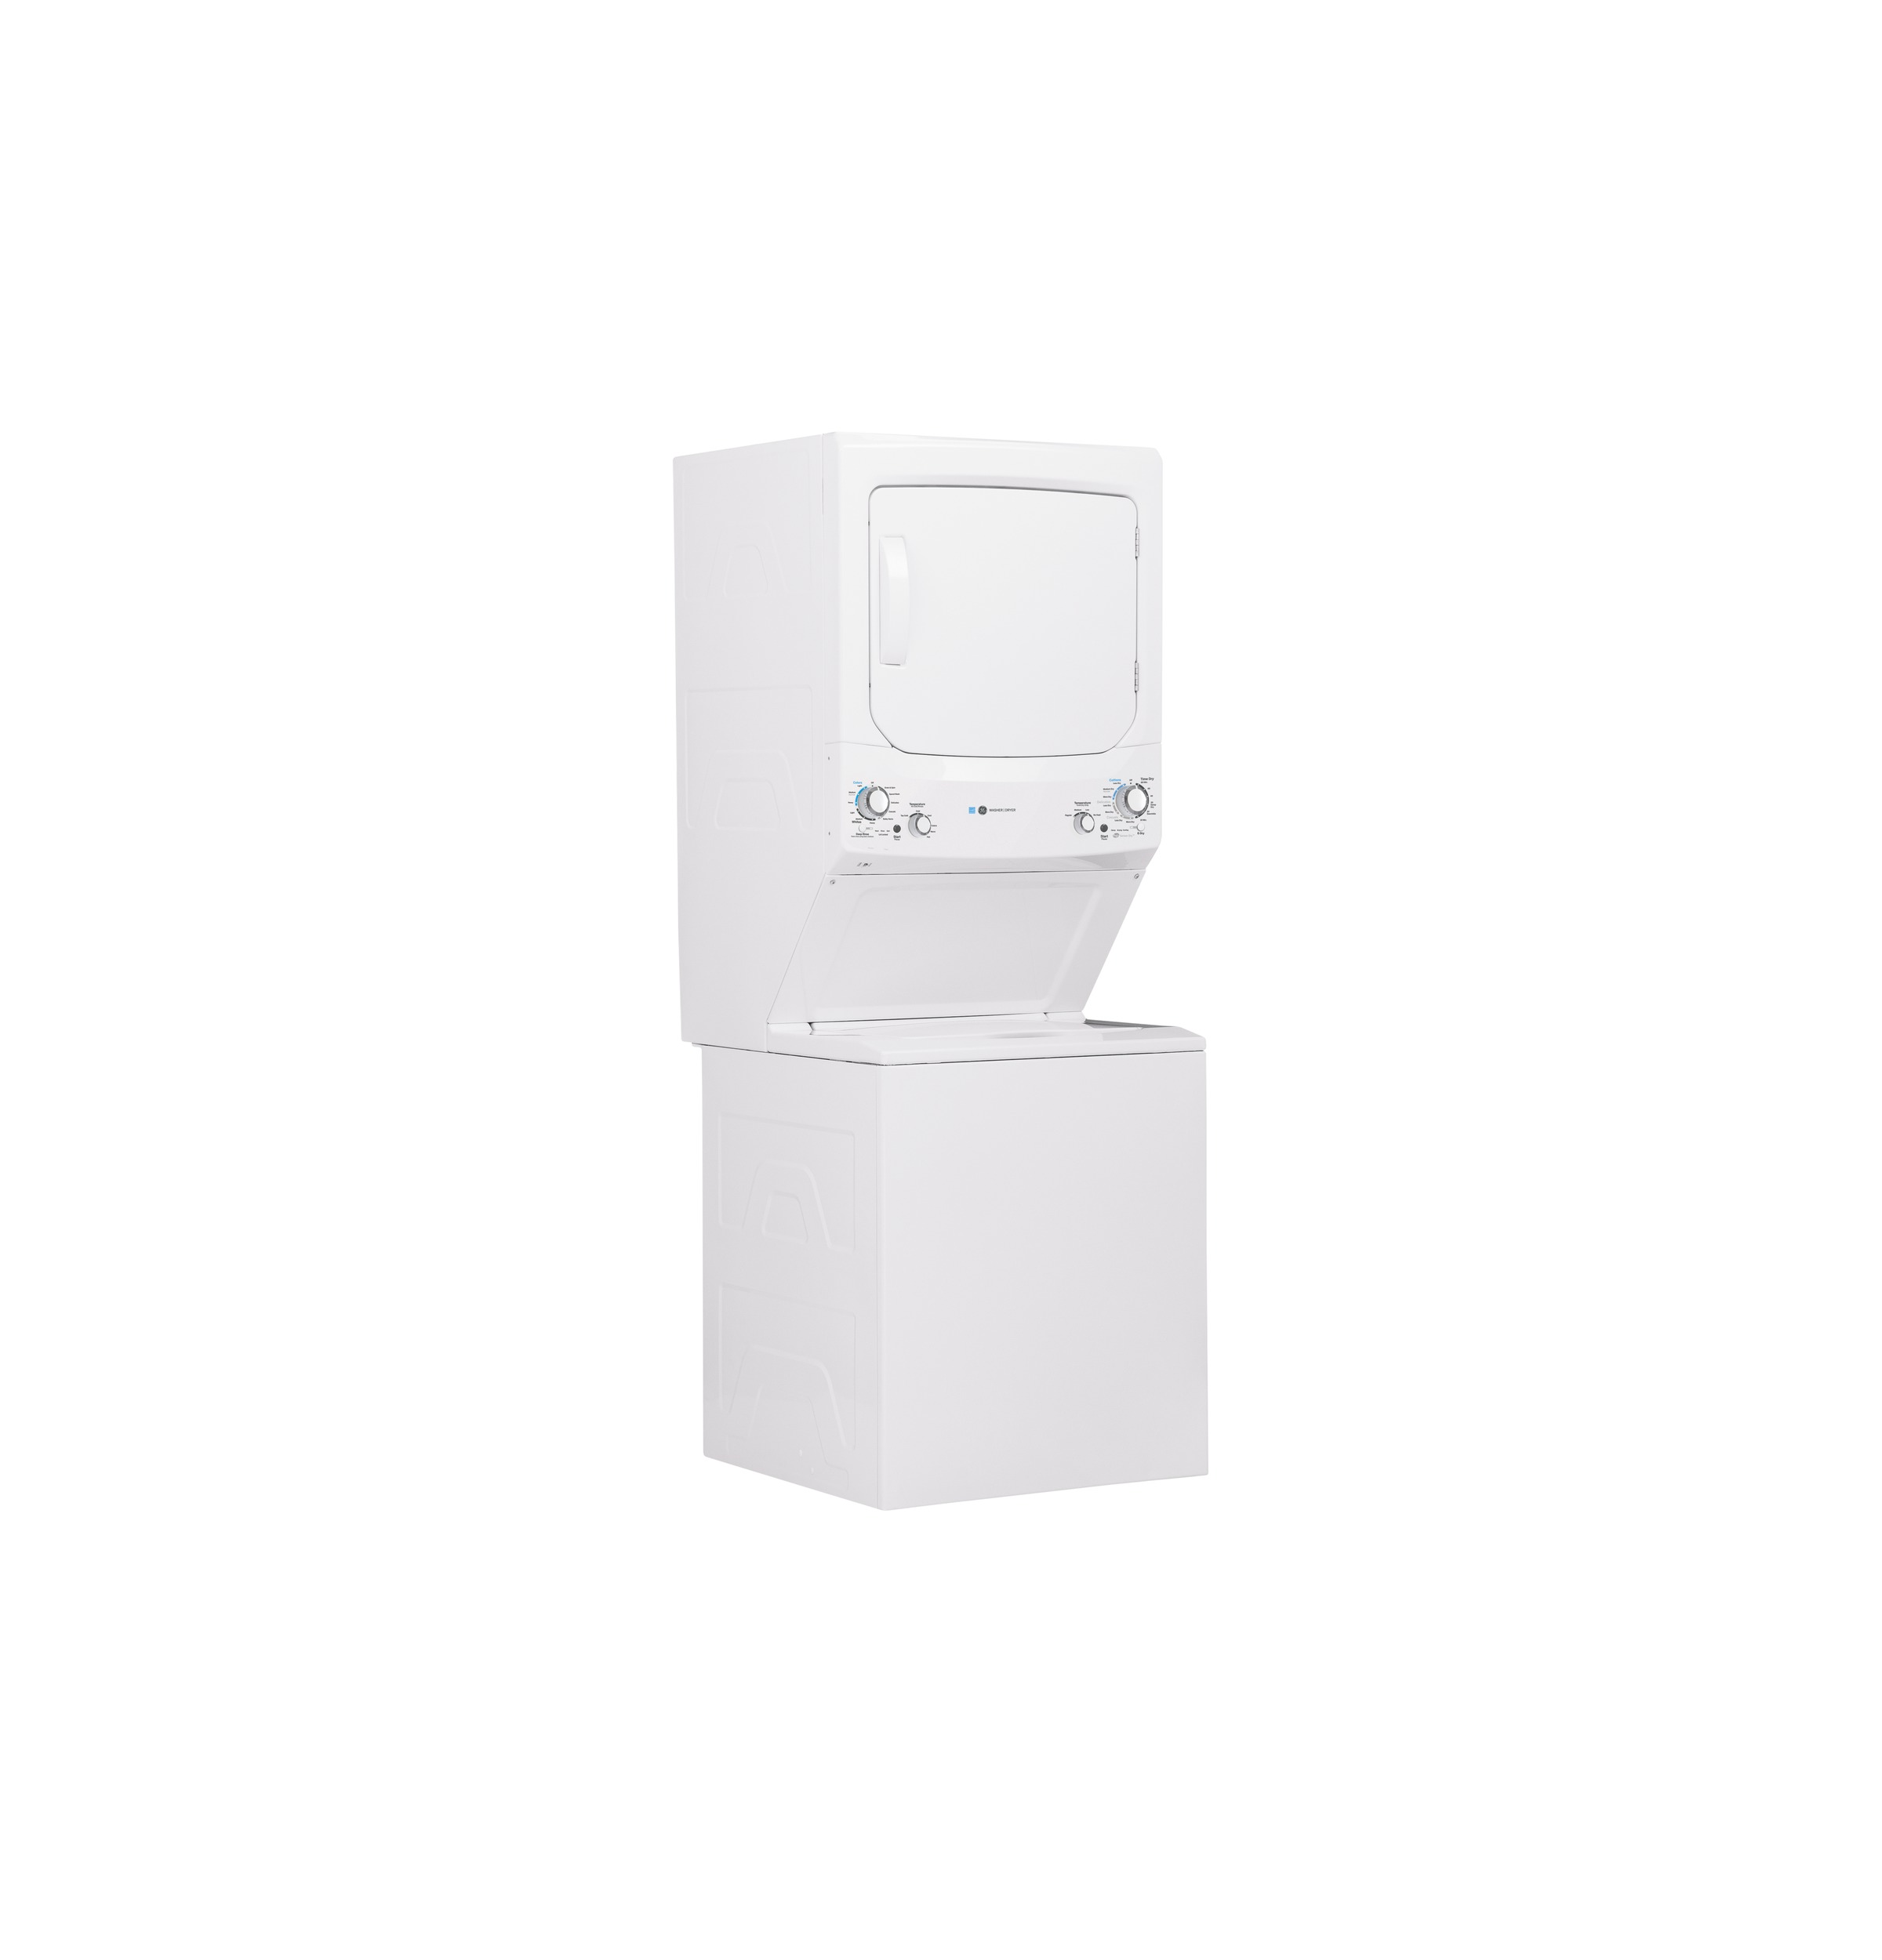 Model: GUD27EESNWW   GE GE Unitized Spacemaker® ENERGY STAR® 3.9 cu. ft. Capacity Washer with Stainless Steel Basket and 5.9 cu. ft. Capacity Electric Dryer